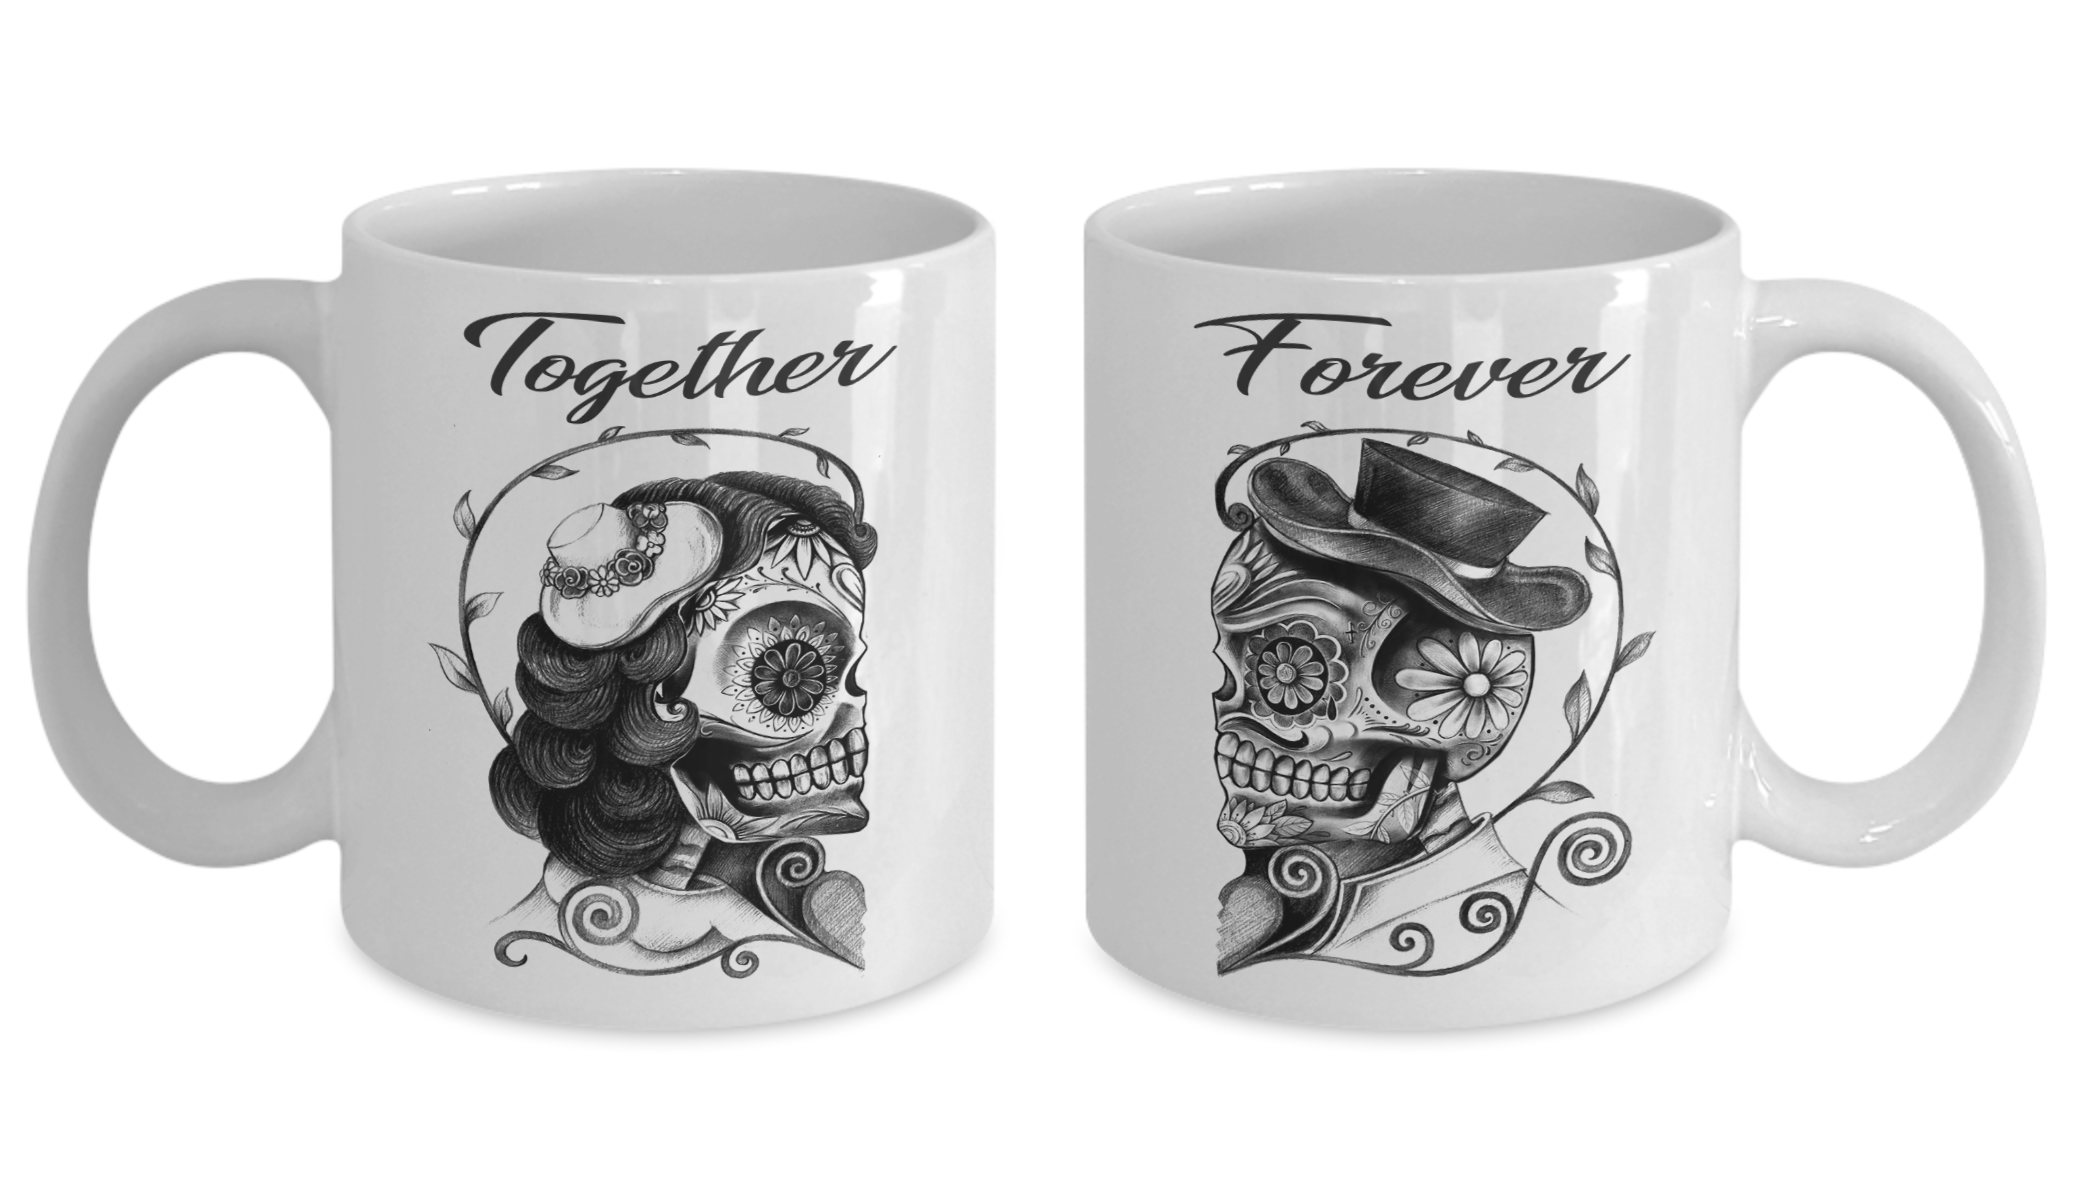 SET OF 2 MUGS - Chocolate Is Great, Matching Mugs Are Much Better